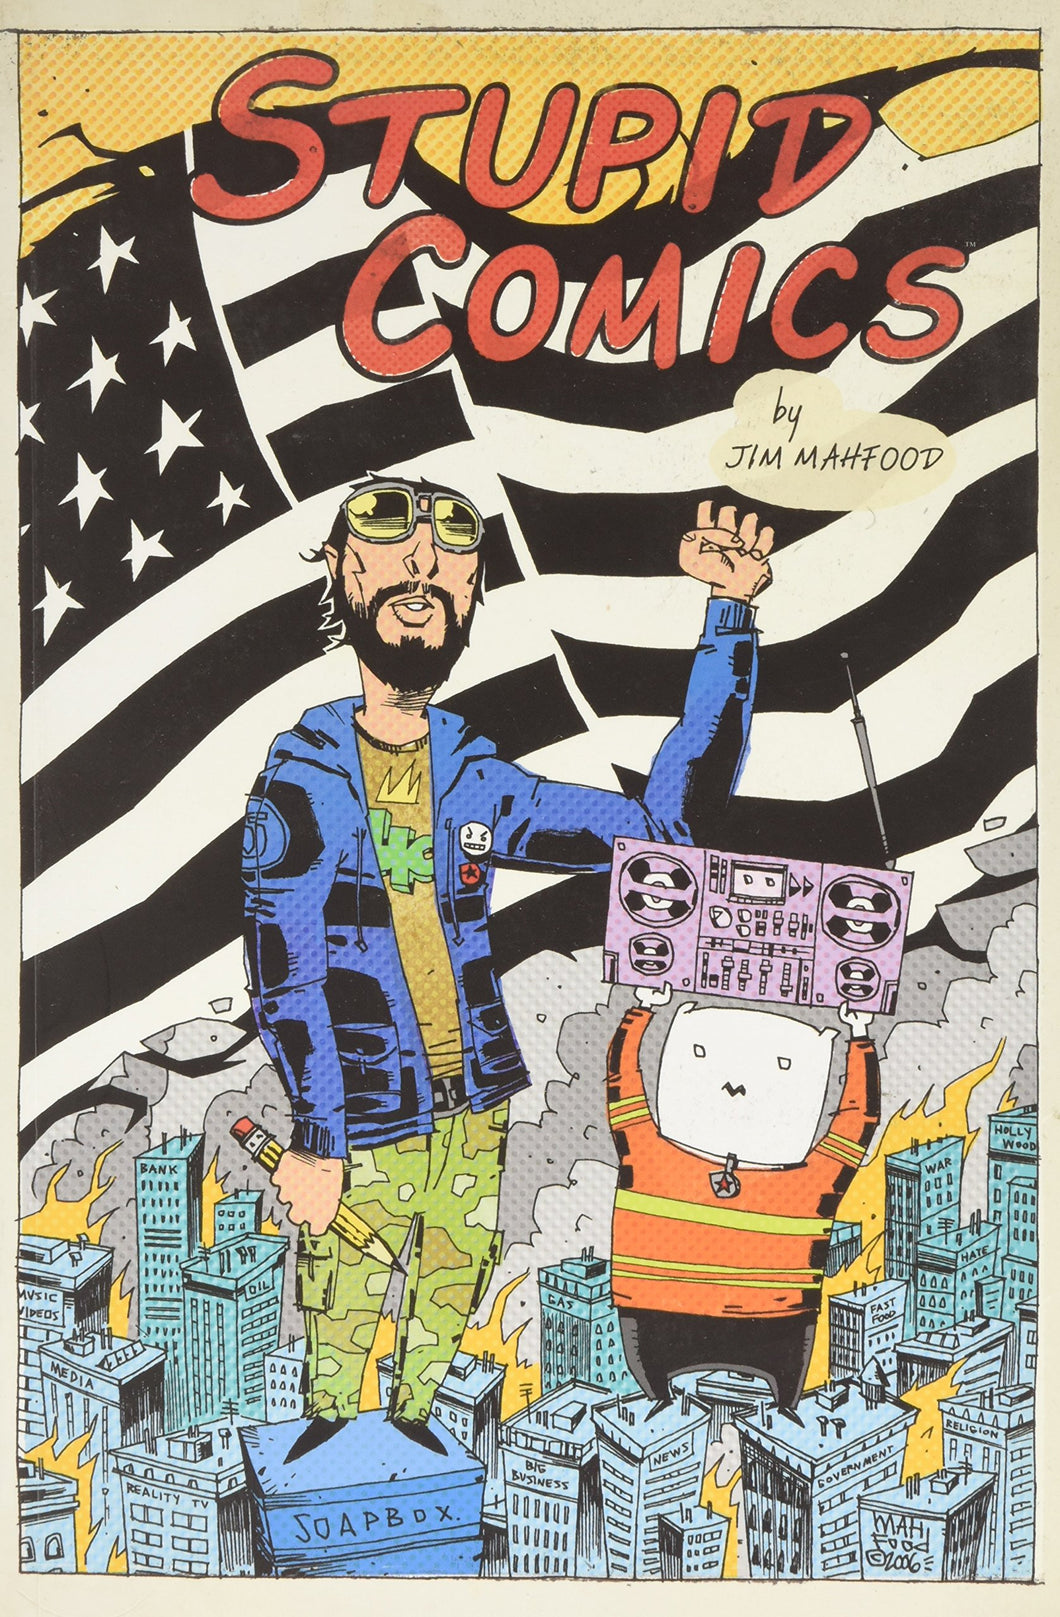 Stupid Comics Collection (Vol. 1) [Paperback] [Jul 04, 2006] Mahfood, Jim